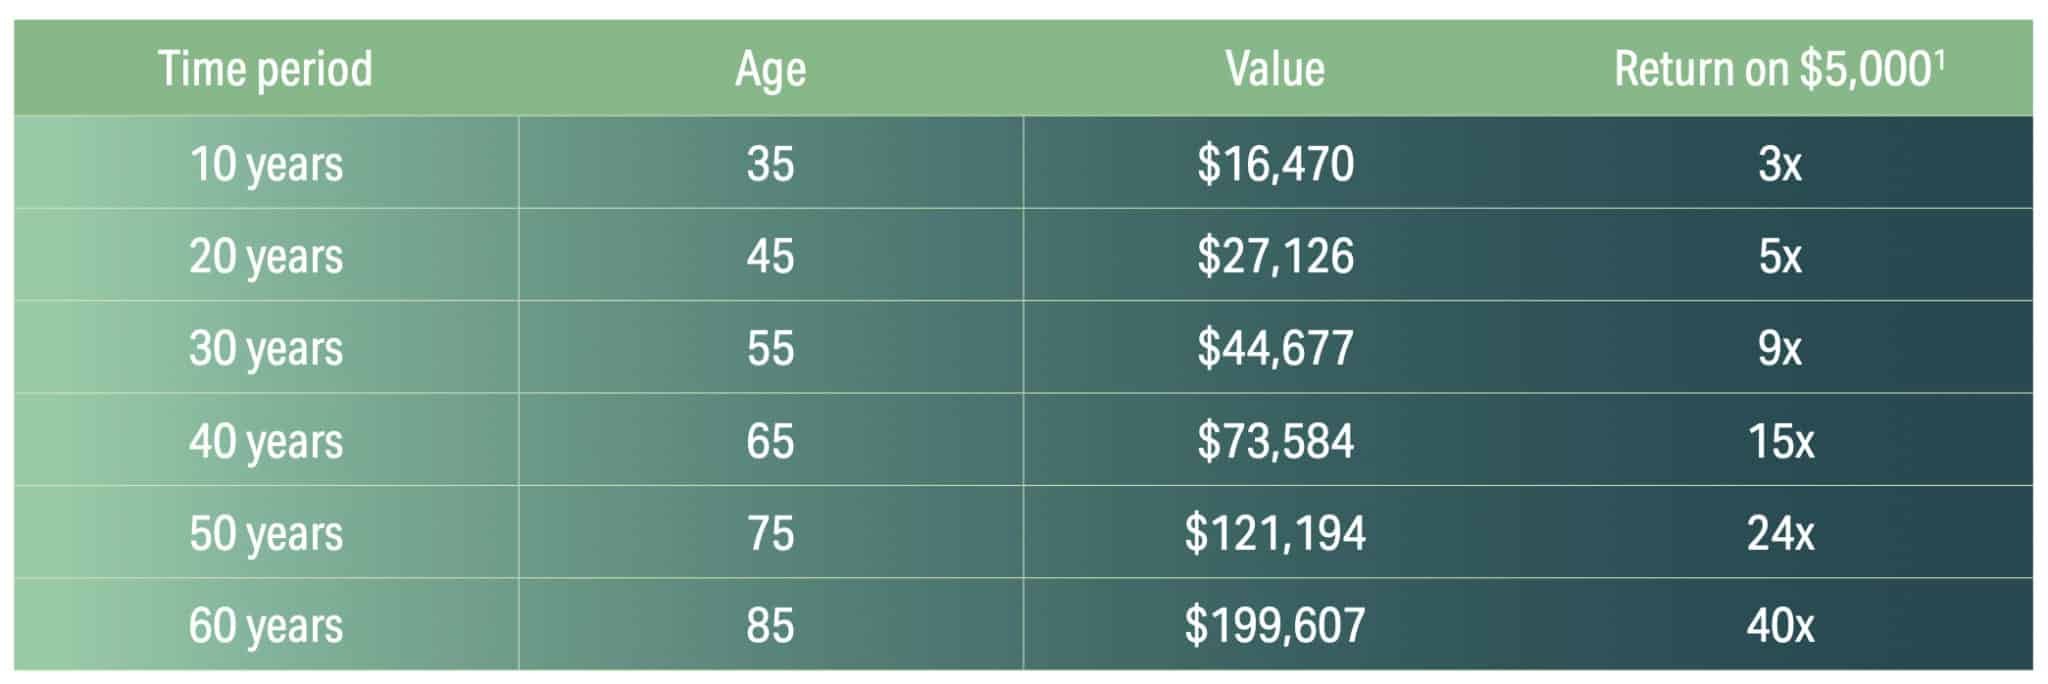 The benefits of compounding through to retirement